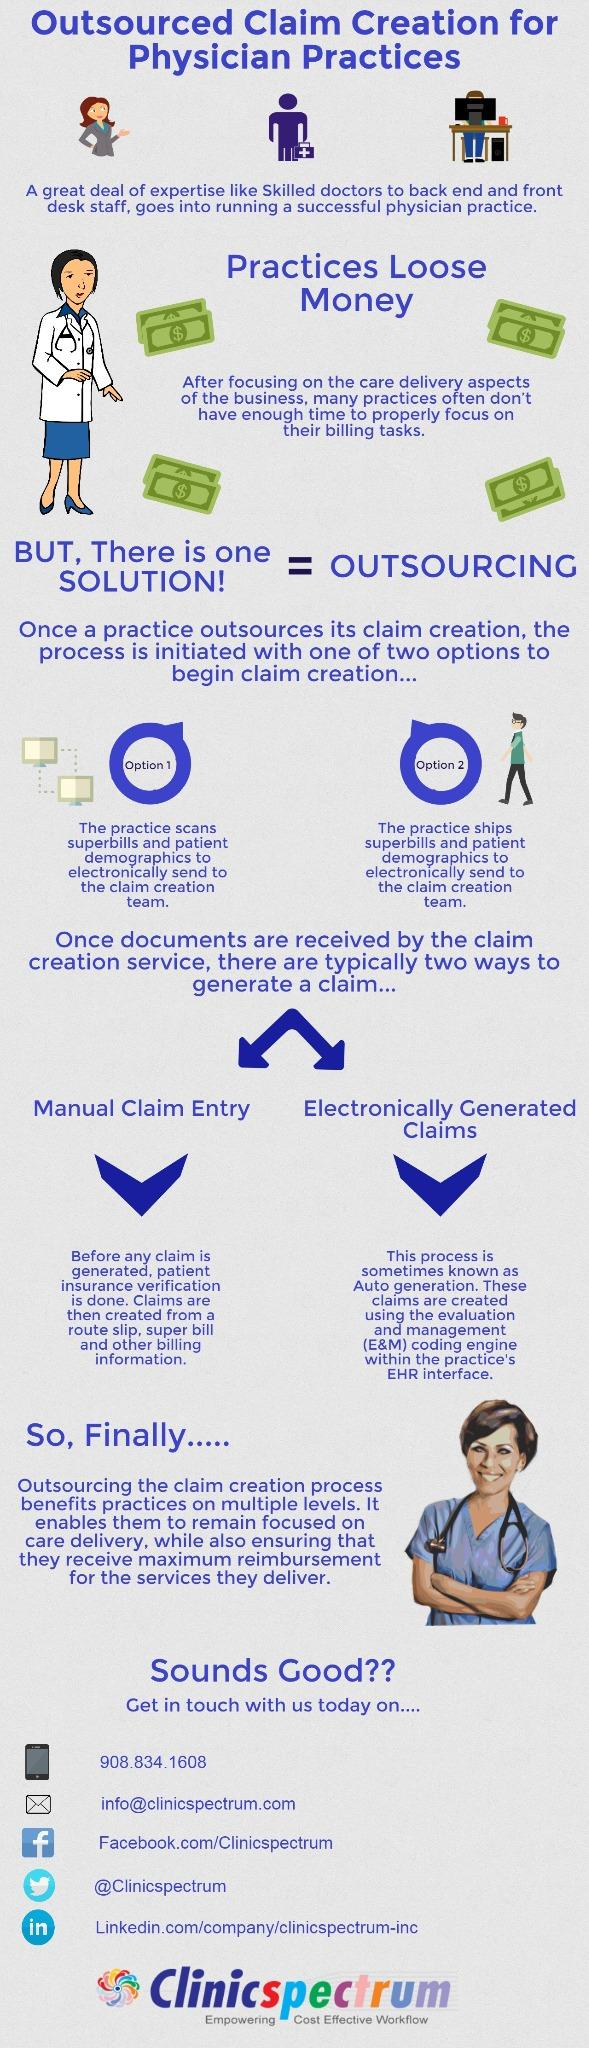 Outsourcing Claim Creation Infographic